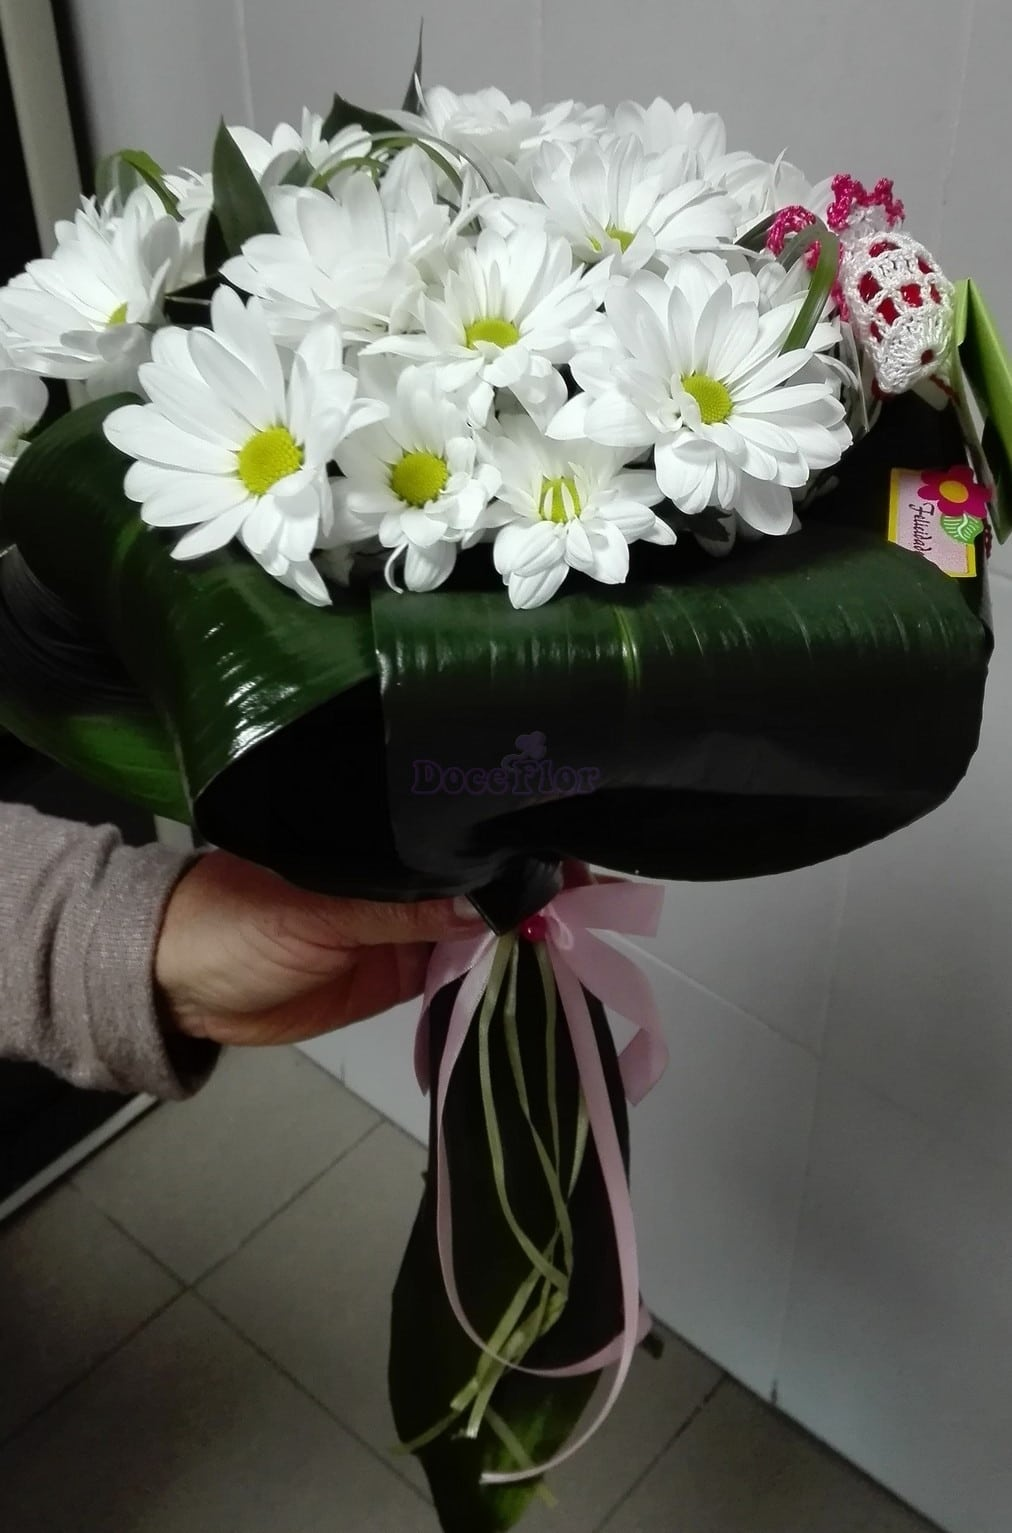 Bouquet de margaridas